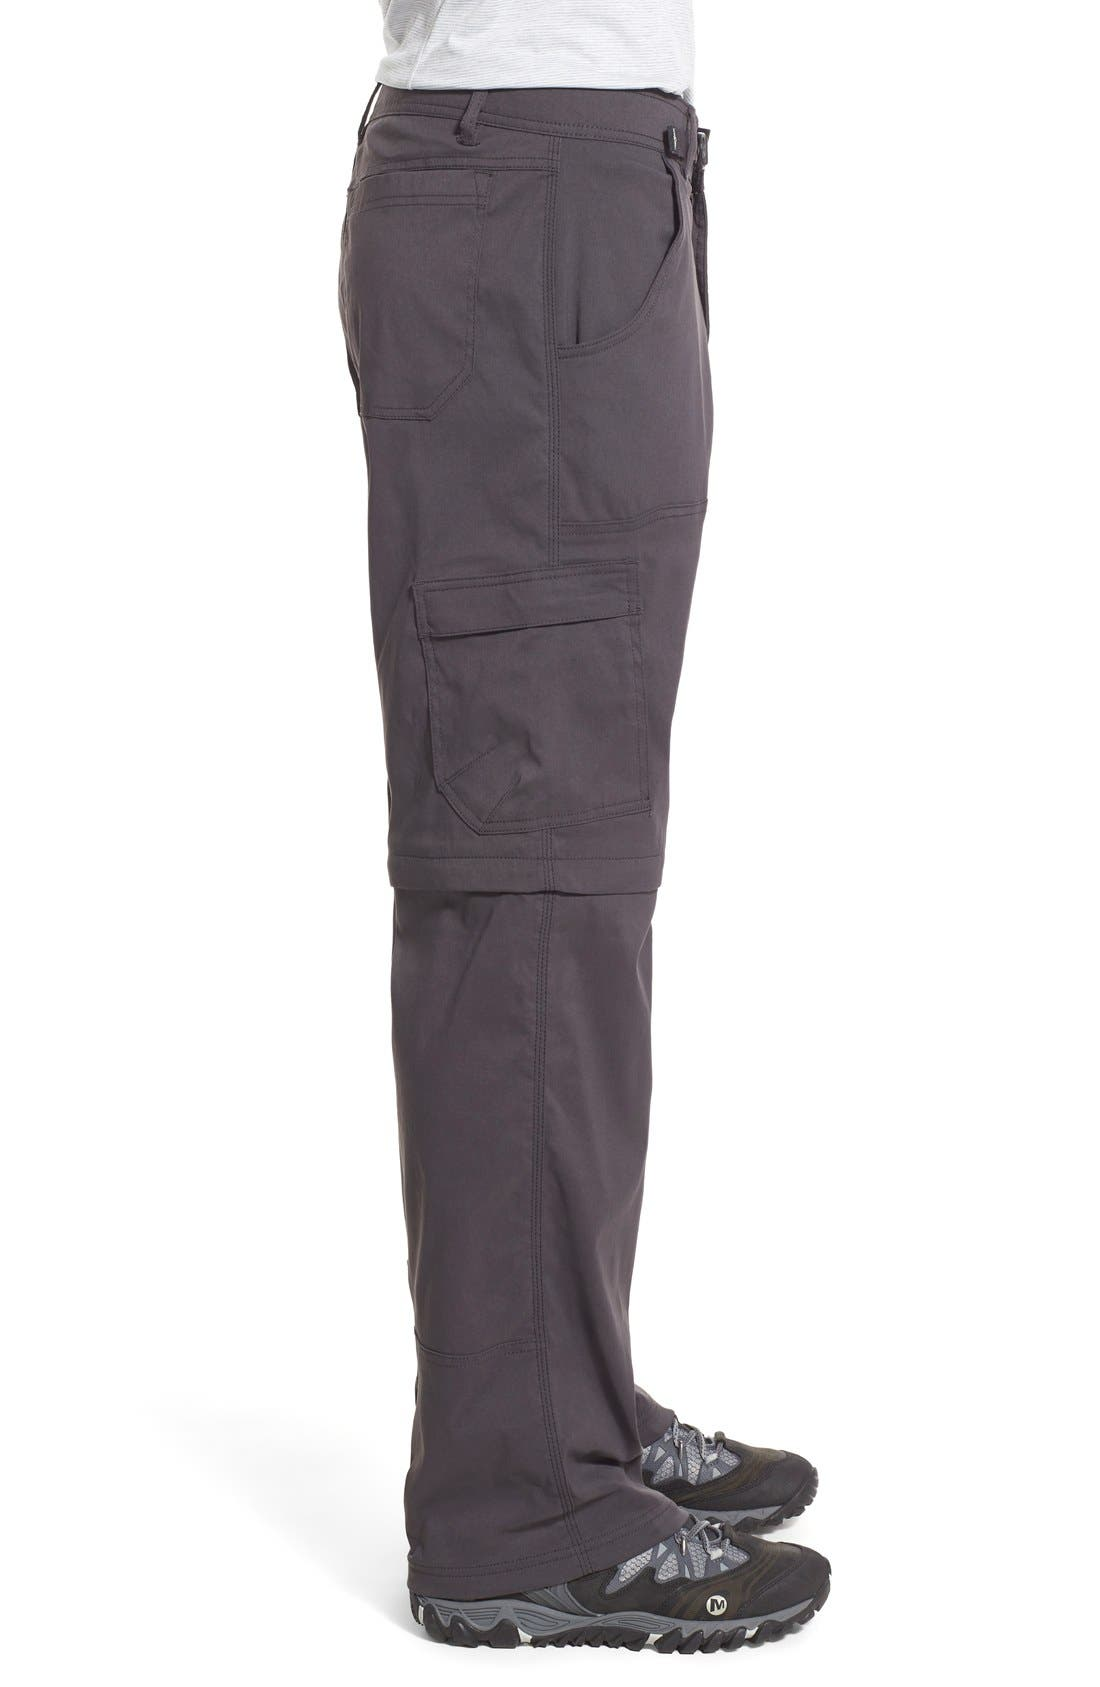 Zion Stretch Convertible Cargo Hiking Pants,                             Alternate thumbnail 7, color,                             010